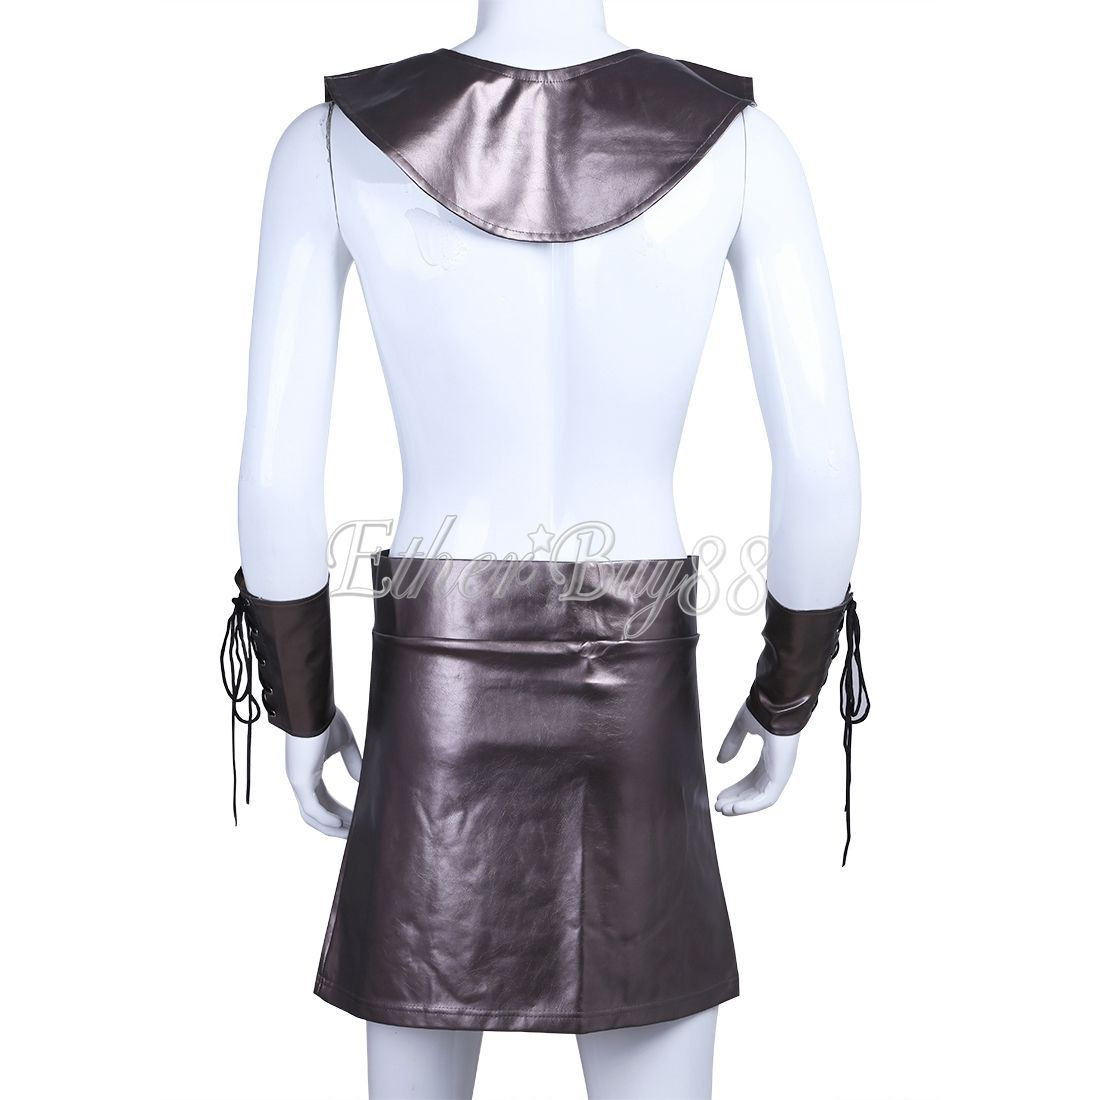 ... Men Faux Leather Roman Gladiator Costume Greek Soldier Warrior Fancy Dress Party ...  sc 1 st  Bonanza : leather gladiator costume  - Germanpascual.Com